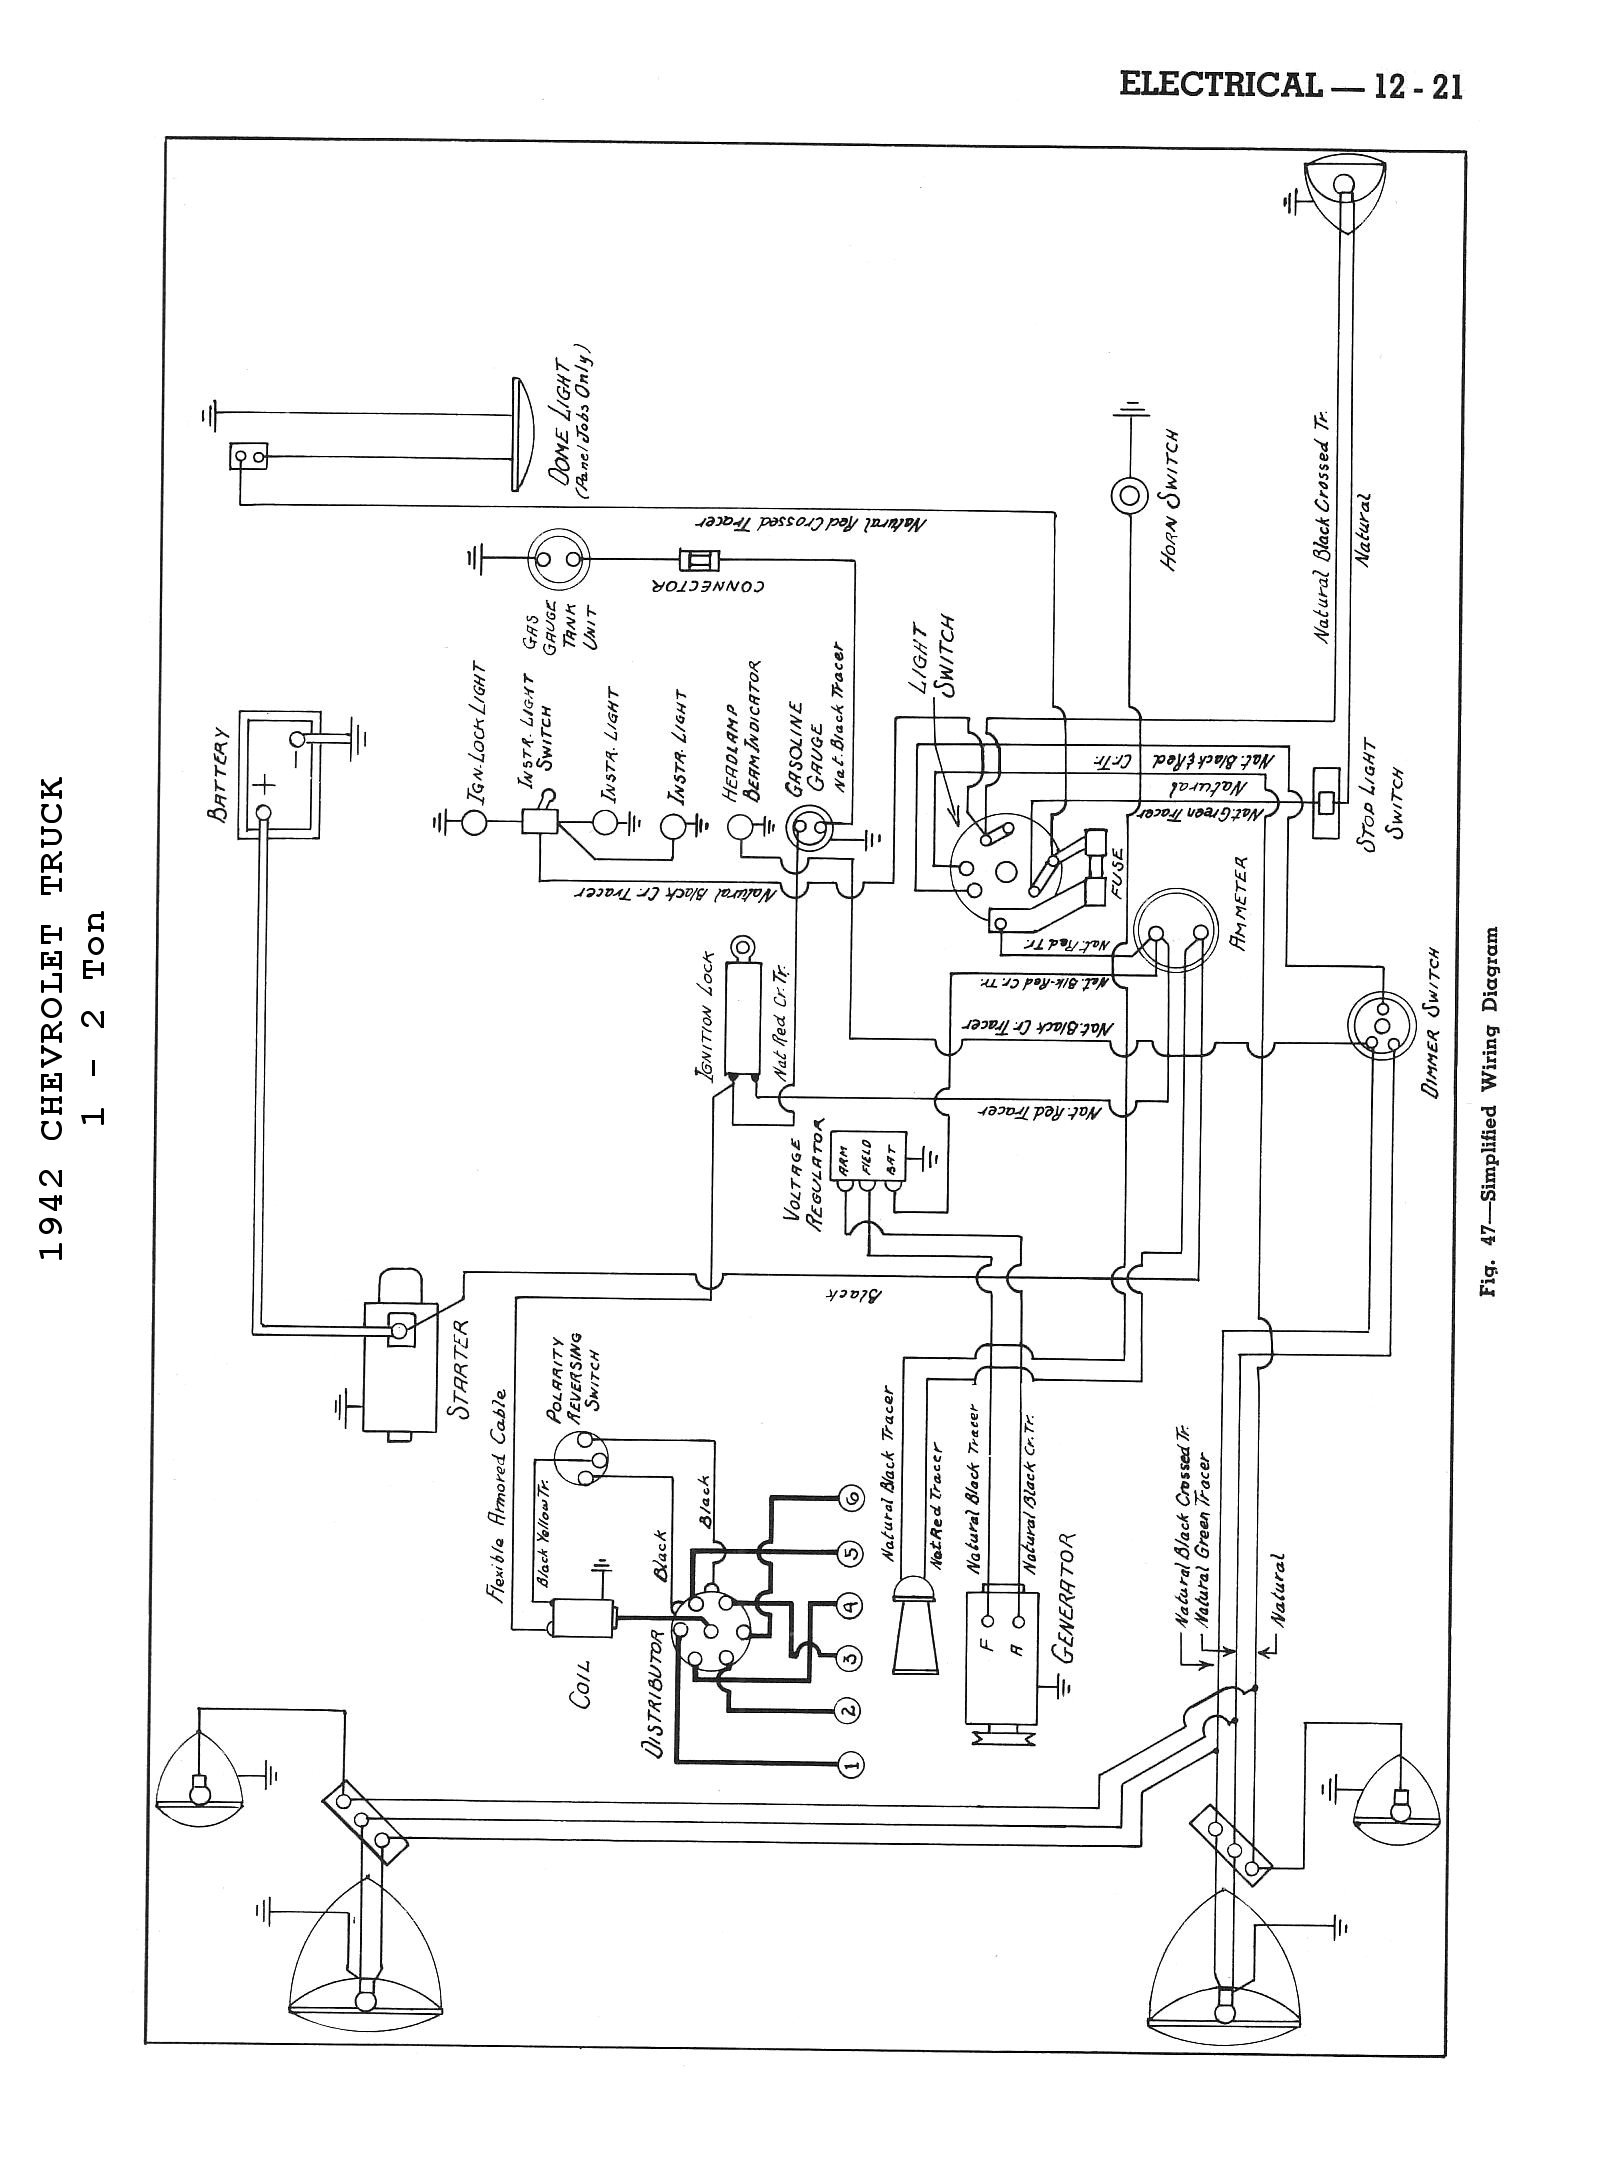 42cm4x2t1221 cm wiring diagram cm hoist wiring diagram \u2022 wiring diagrams j boston subsat 6 wiring diagram at crackthecode.co